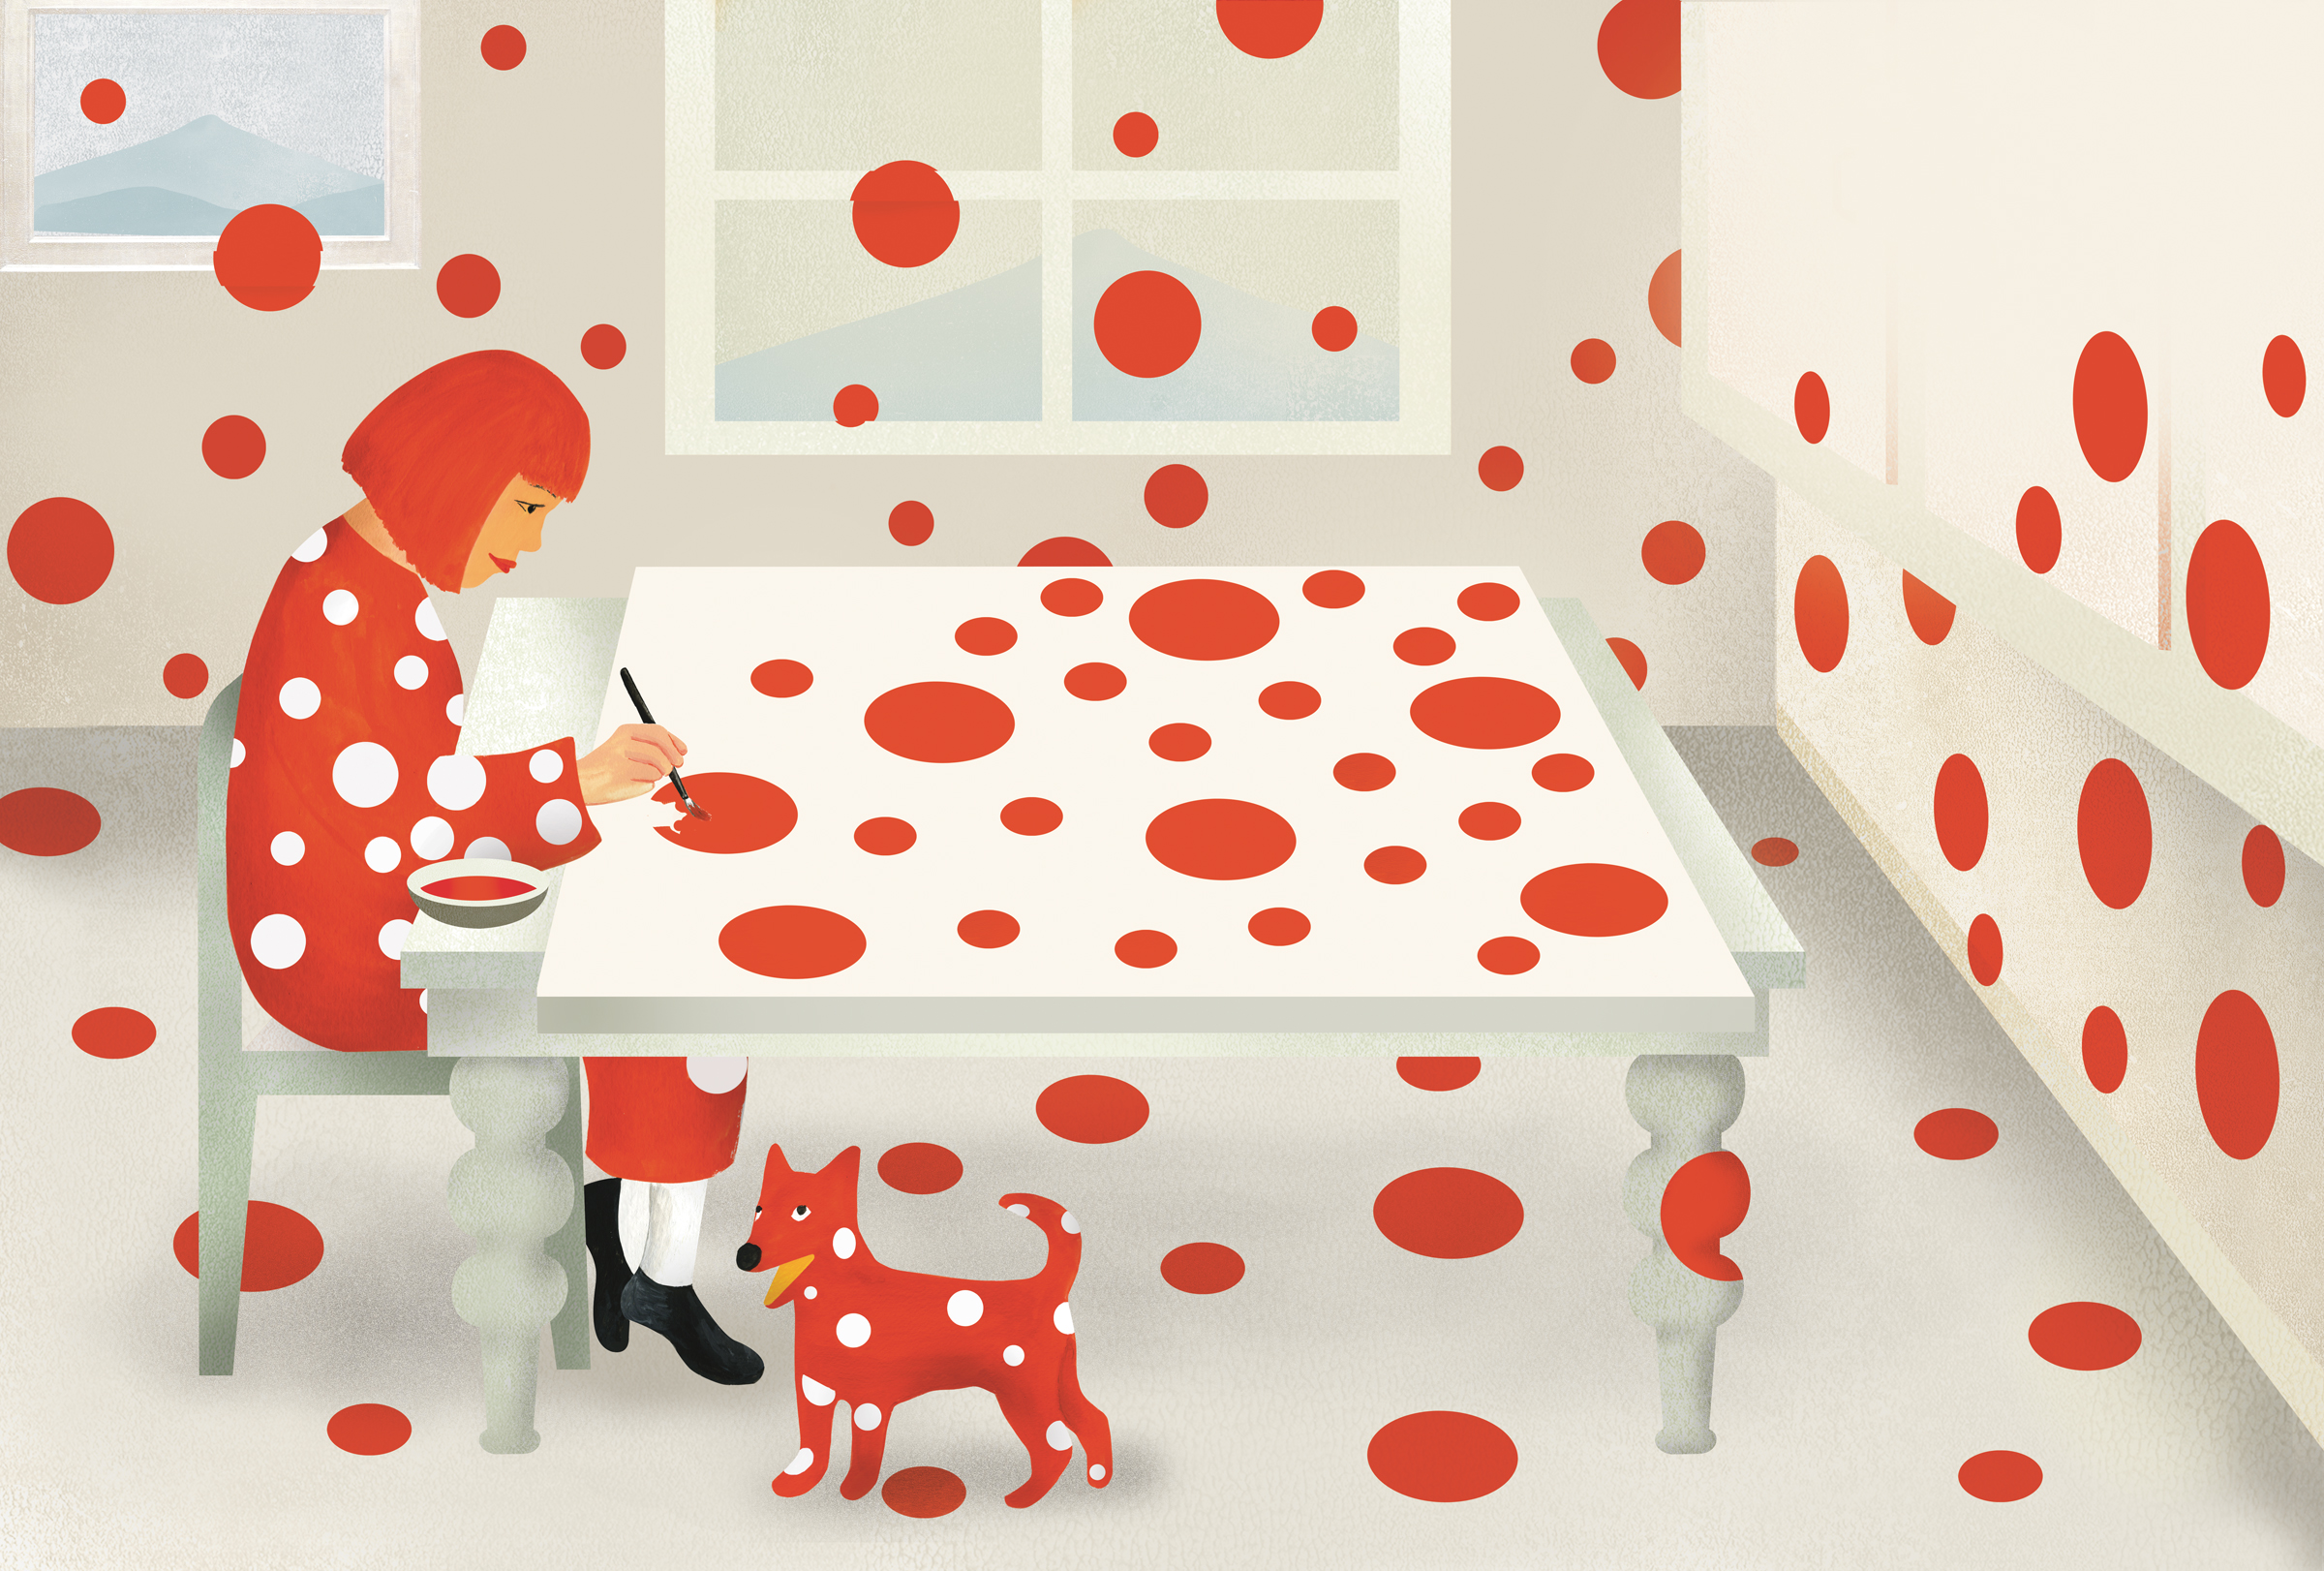 Kusama obliteration room.jpg